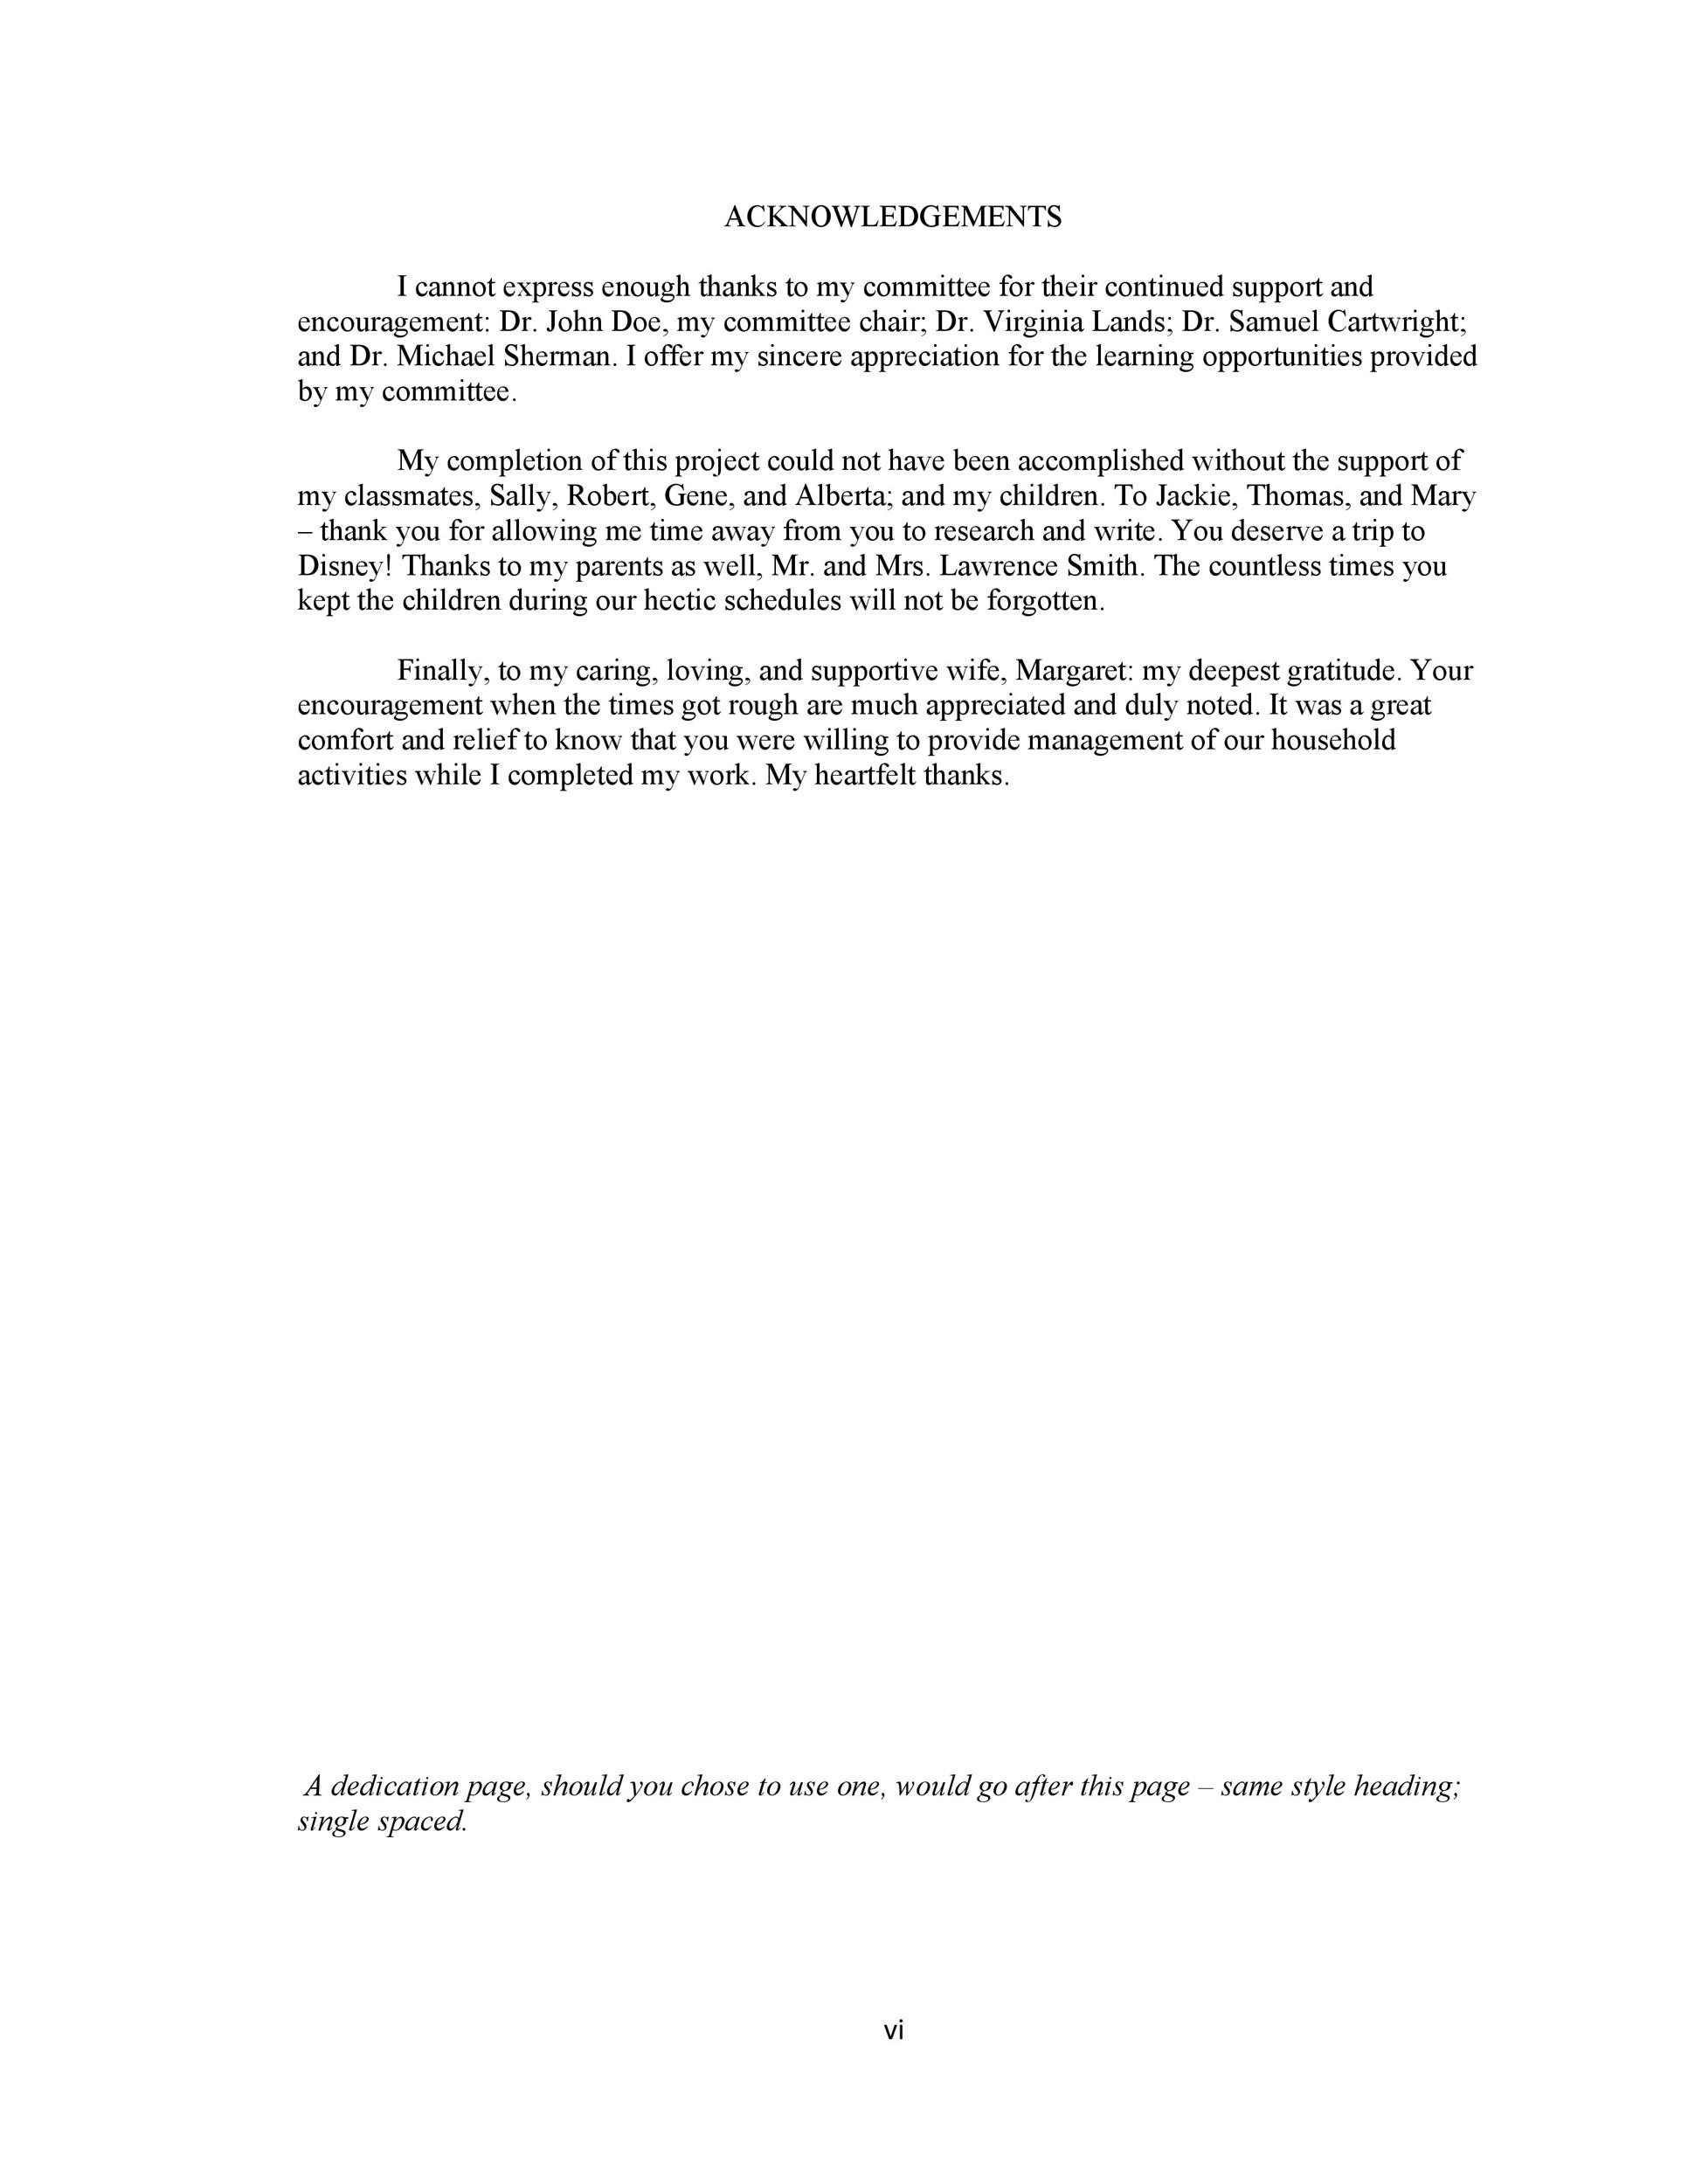 Free acknowledgement sample 03